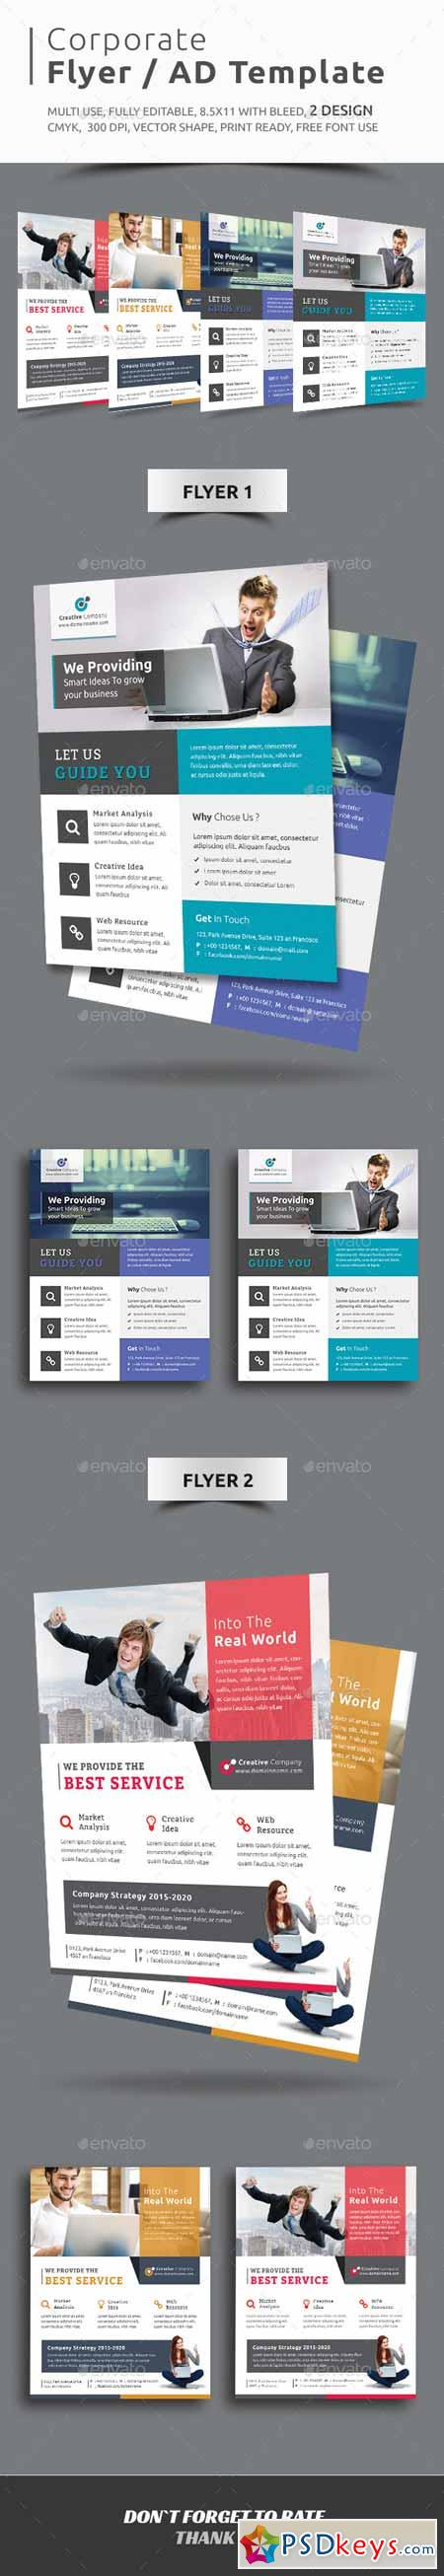 Corporate Flyer AD Template 11769827